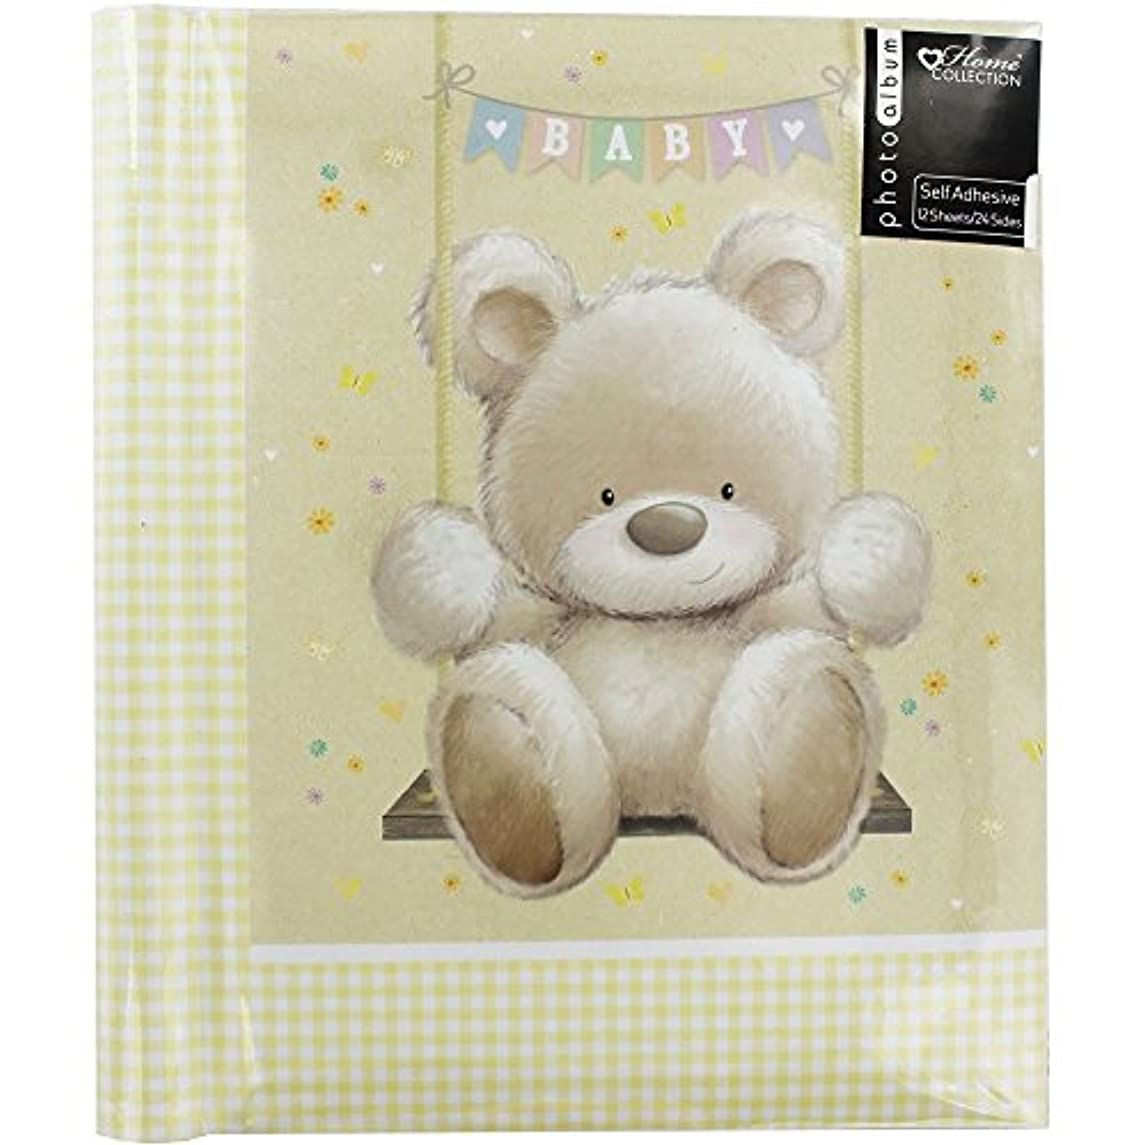 Anker Photo/Picture Frame Baby Bear 12 Sheet Self Adhesive, White, 10 x 15 x 5 cm